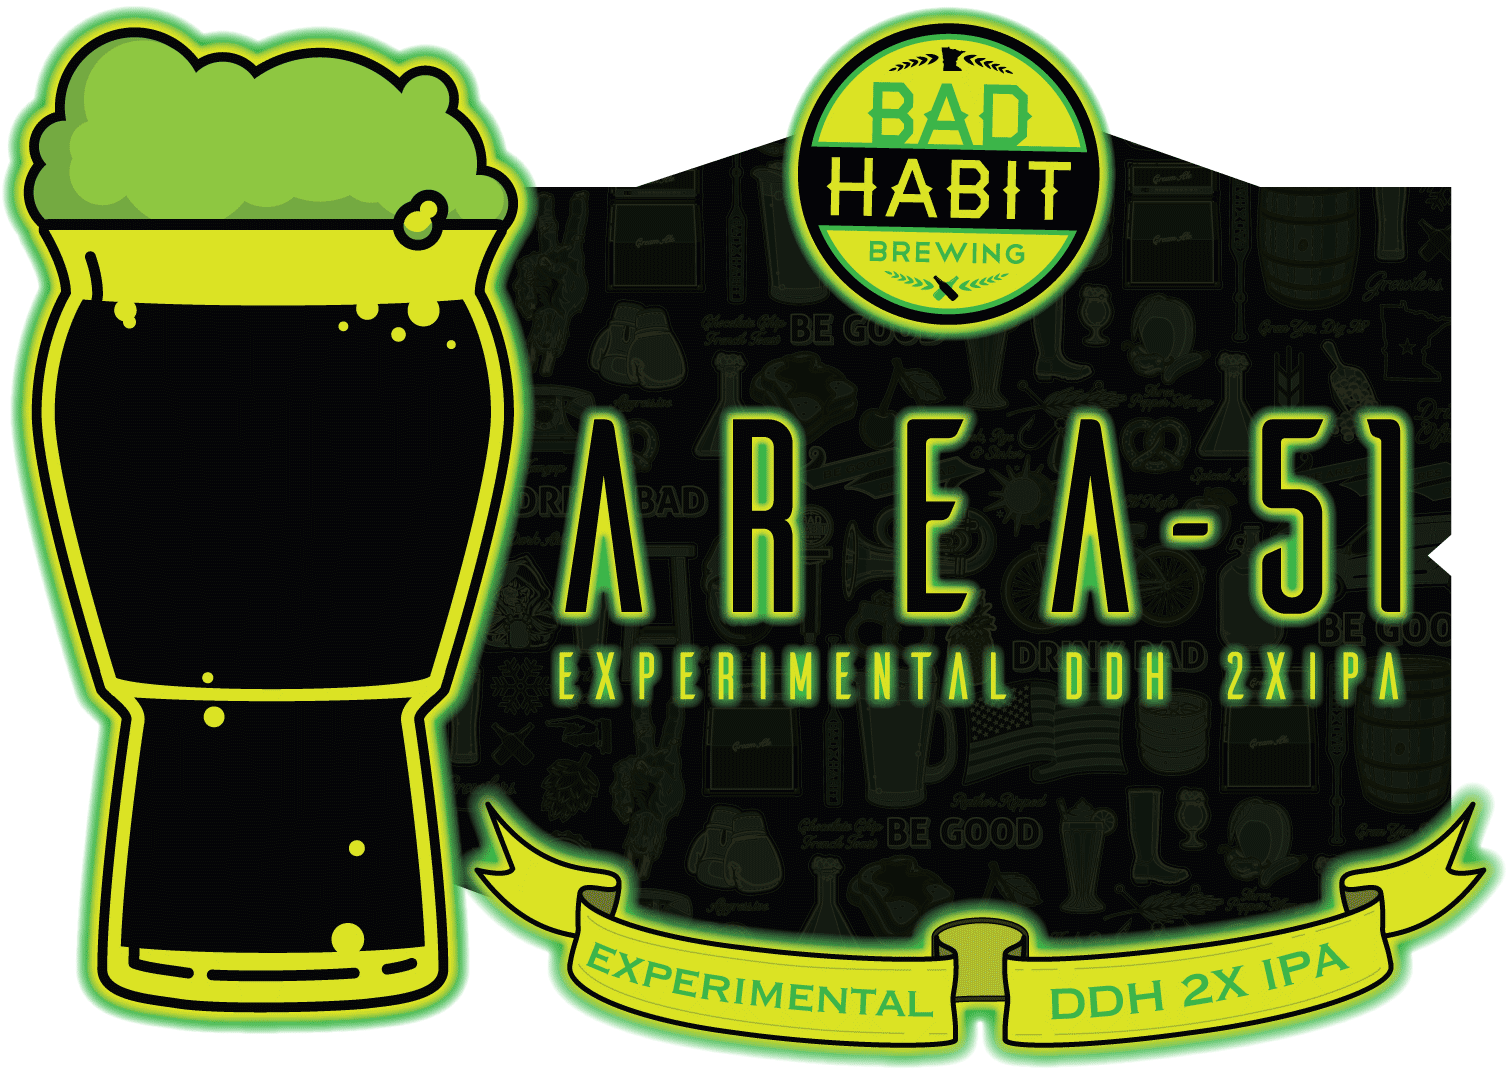 "AREA-51 - Experimental DDH 2X IPA | 8% ABVThere are places in the middle of nowhere, taking little green ""things"" and doing wild experiments on them. Those people are us, those little green ""things"" are hops, and those wild experiments…are top secret. You might be asking yourself if DDH 2XIPA is actually a real thing? You might also be asking yourself if Area 51 is a real thing? Well, legally we cannot confirm nor deny the existence of Area 51 but we can tell you that very high ABV levels of DDH 2XIPA have been spotted in St. Joseph. Eye witnesses claim it is brewed with experimental methods, new hops and out of this world yeast. Find one for yourself and let us know if you are a believer. The truth is out there."